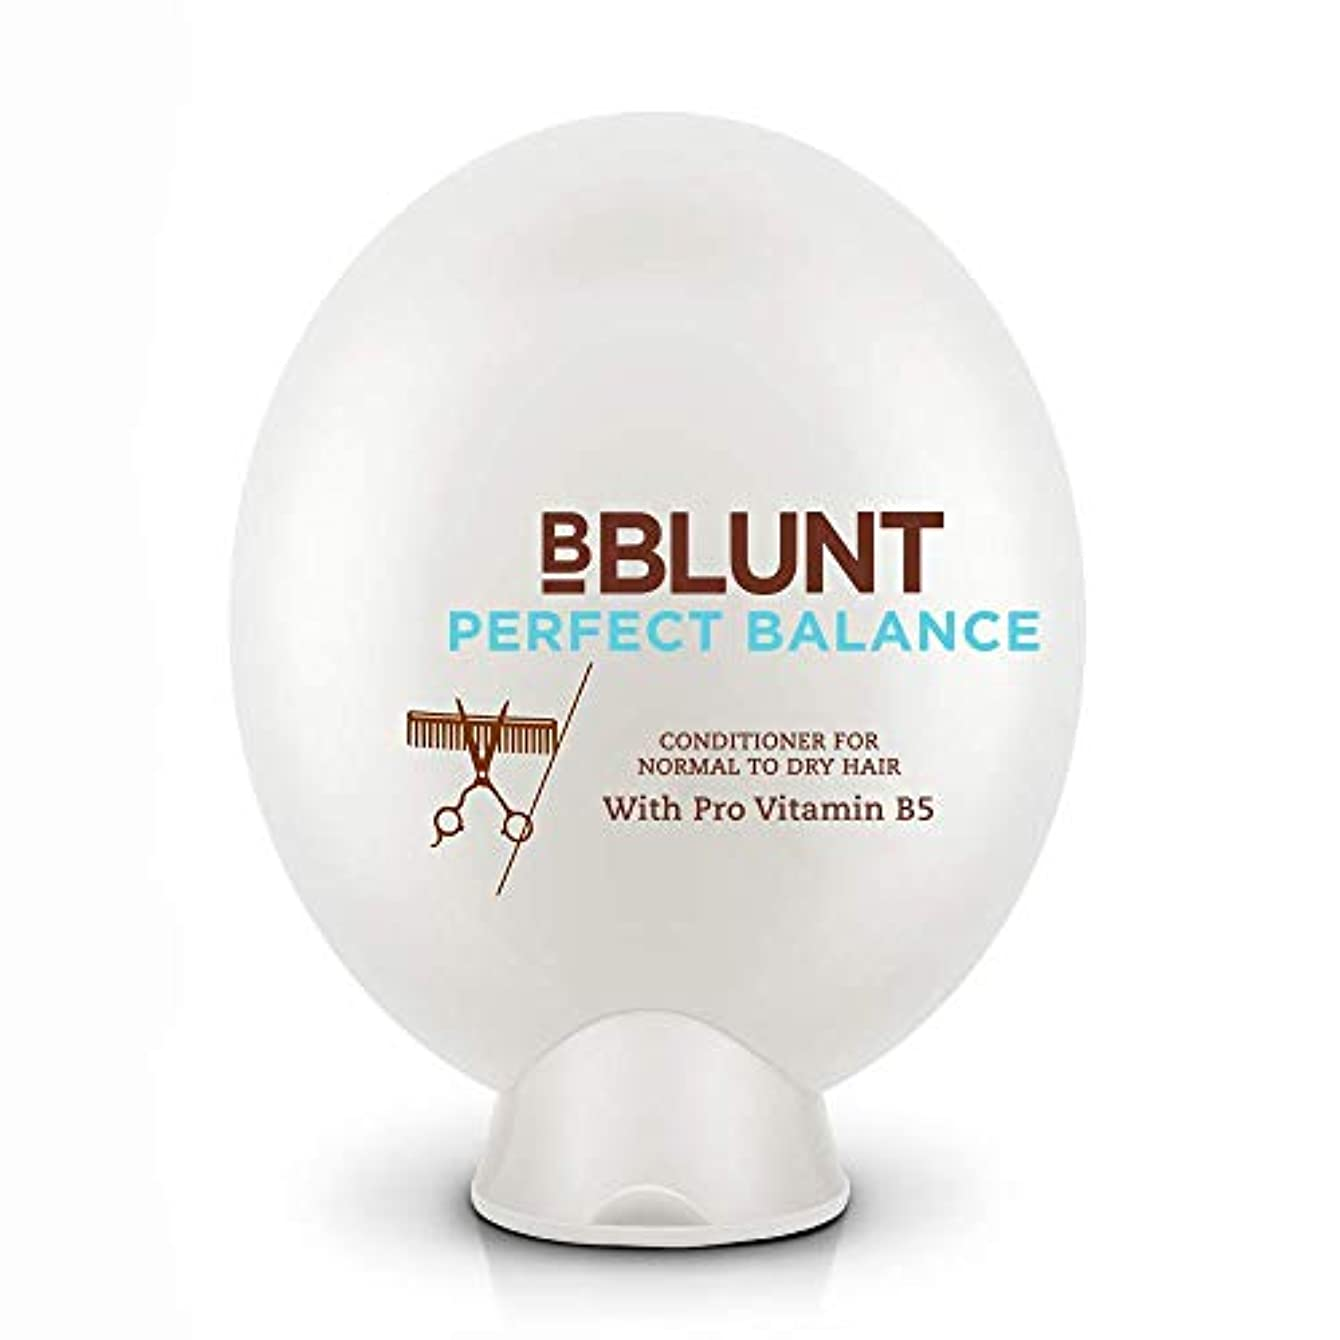 ポータブル恥ボルトBBLUNT Perfect Balance Conditioner for Normal To Dry Hair, 200g (Provitamin B5)